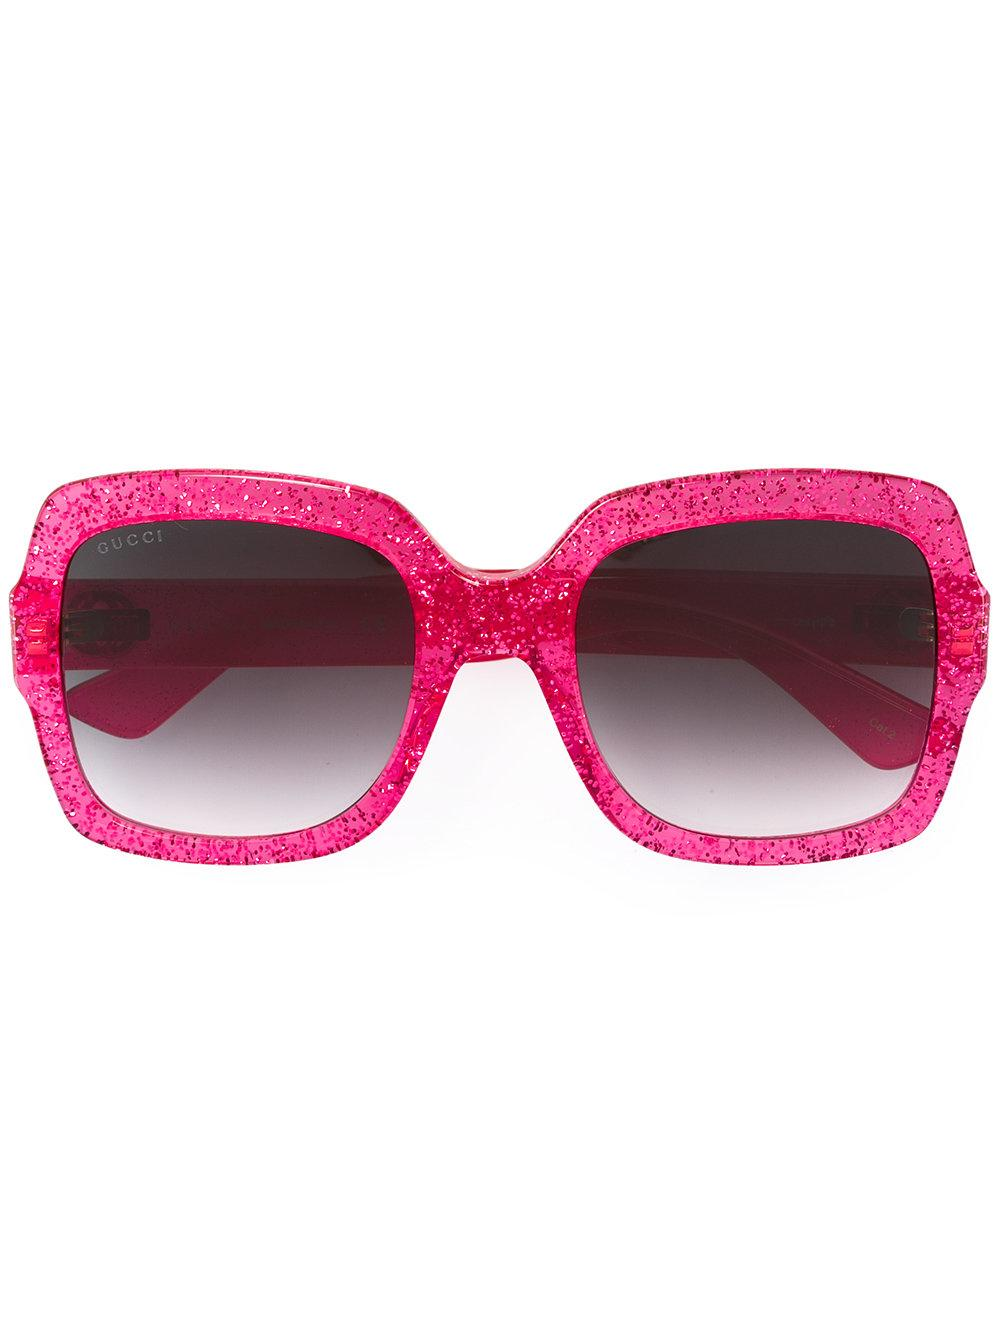 Gucci Glitter Optyl Template Sunglasses in Pink | Lyst